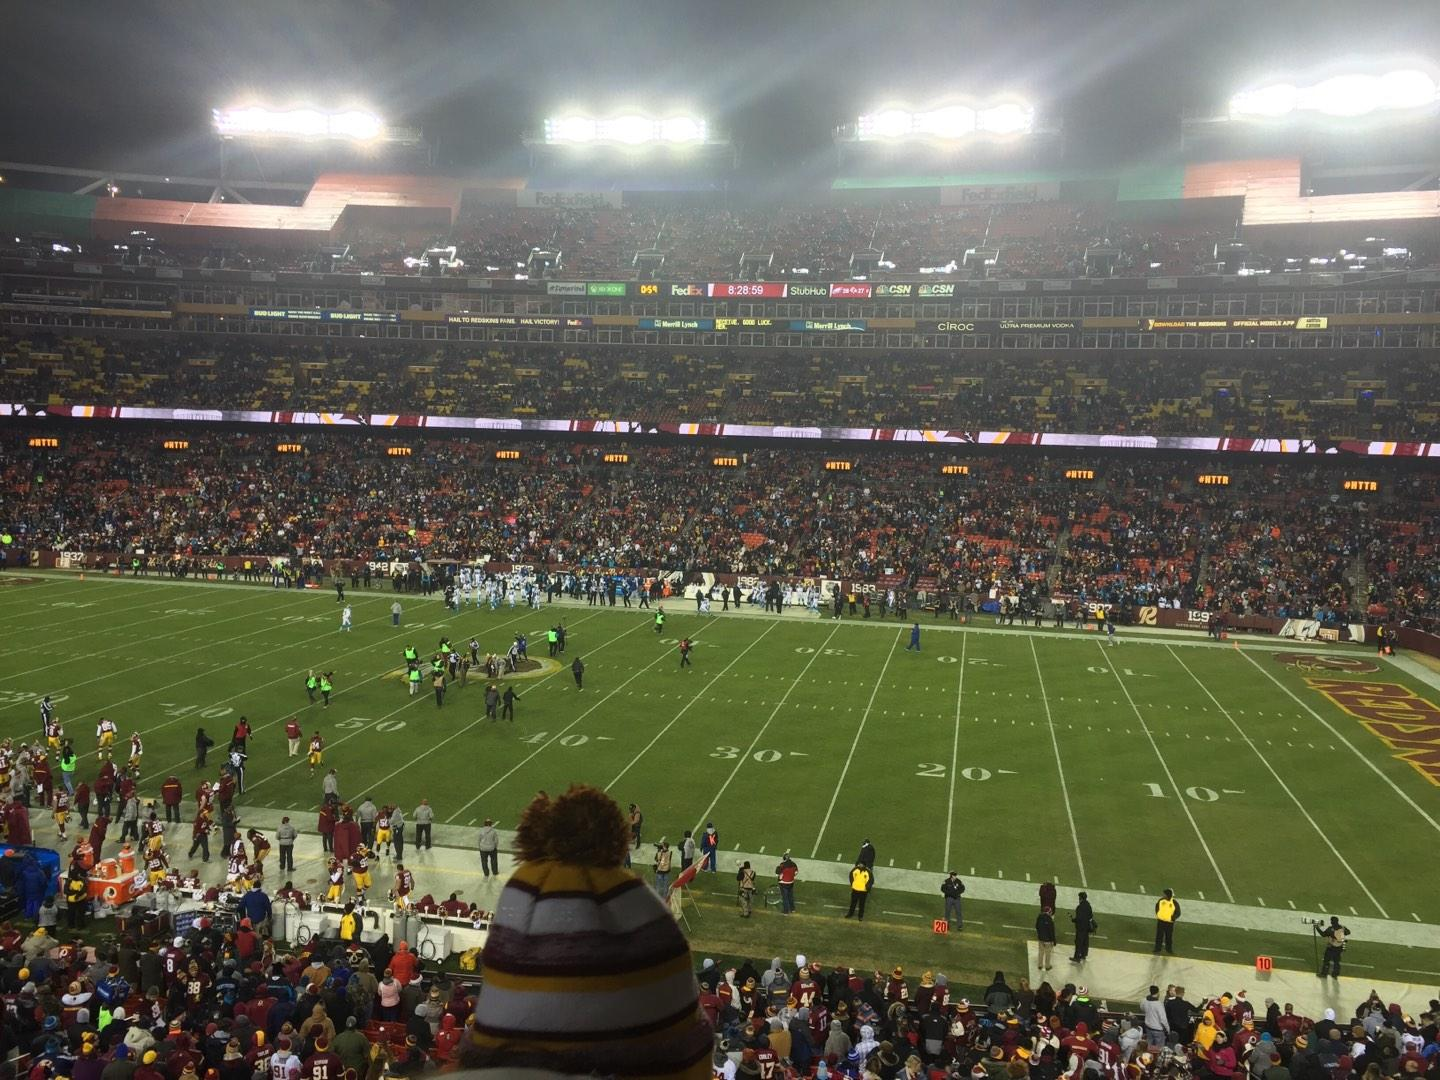 FedEx Field Section 240 Row 2 Seat 18